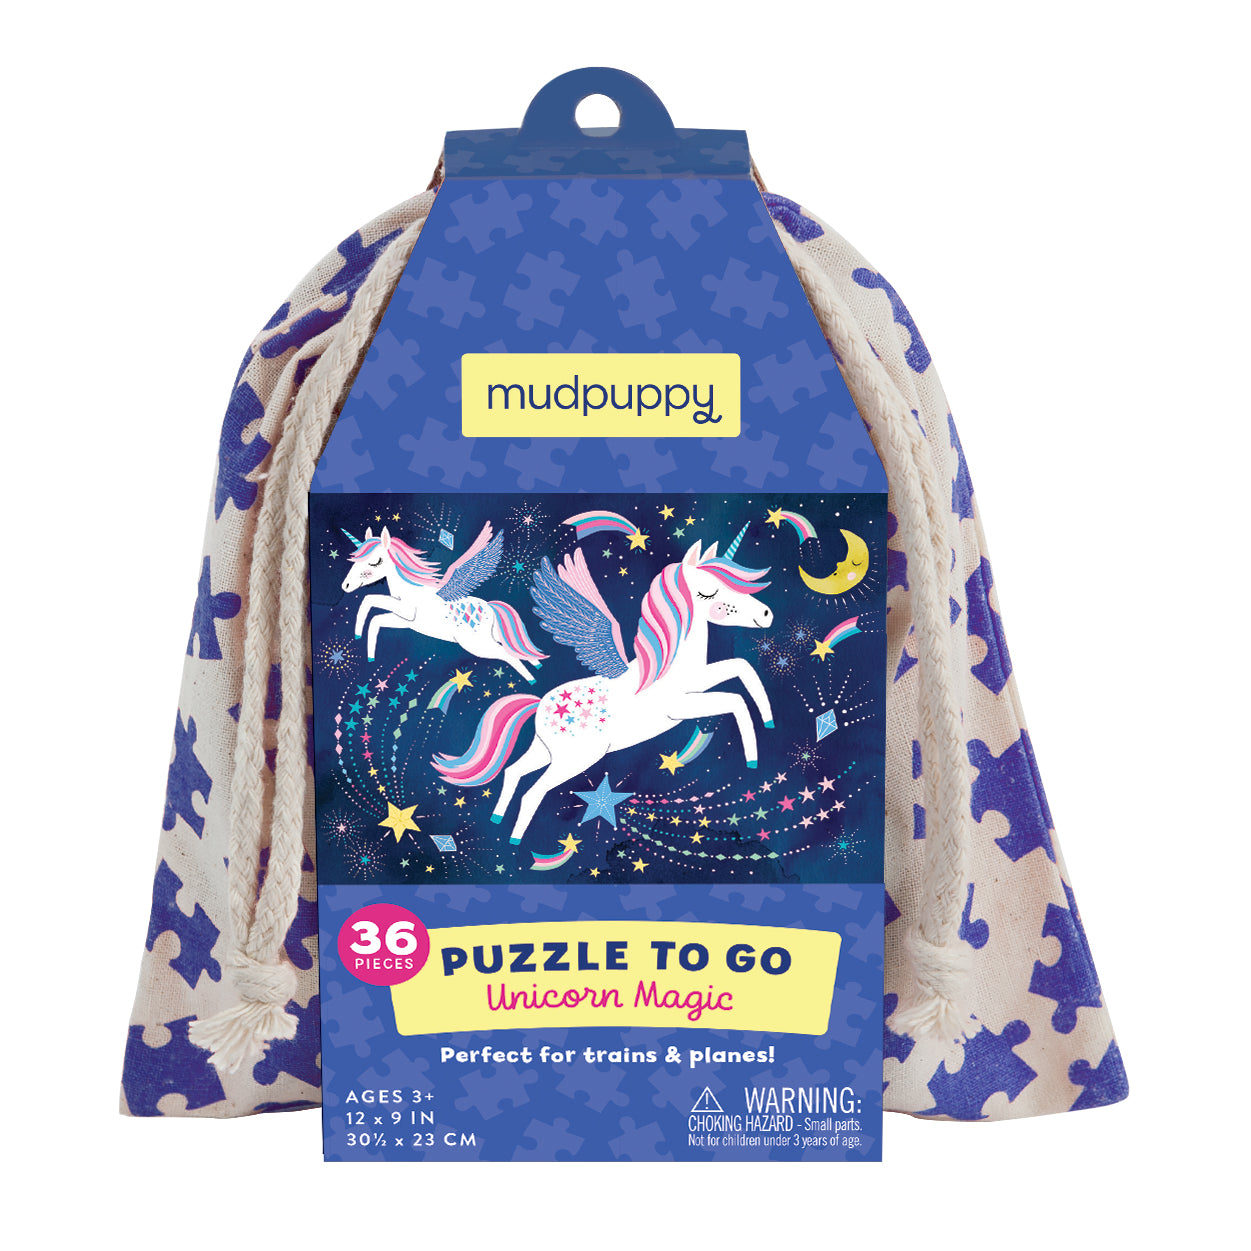 unicorn magic - puzzle to go - 36 piece